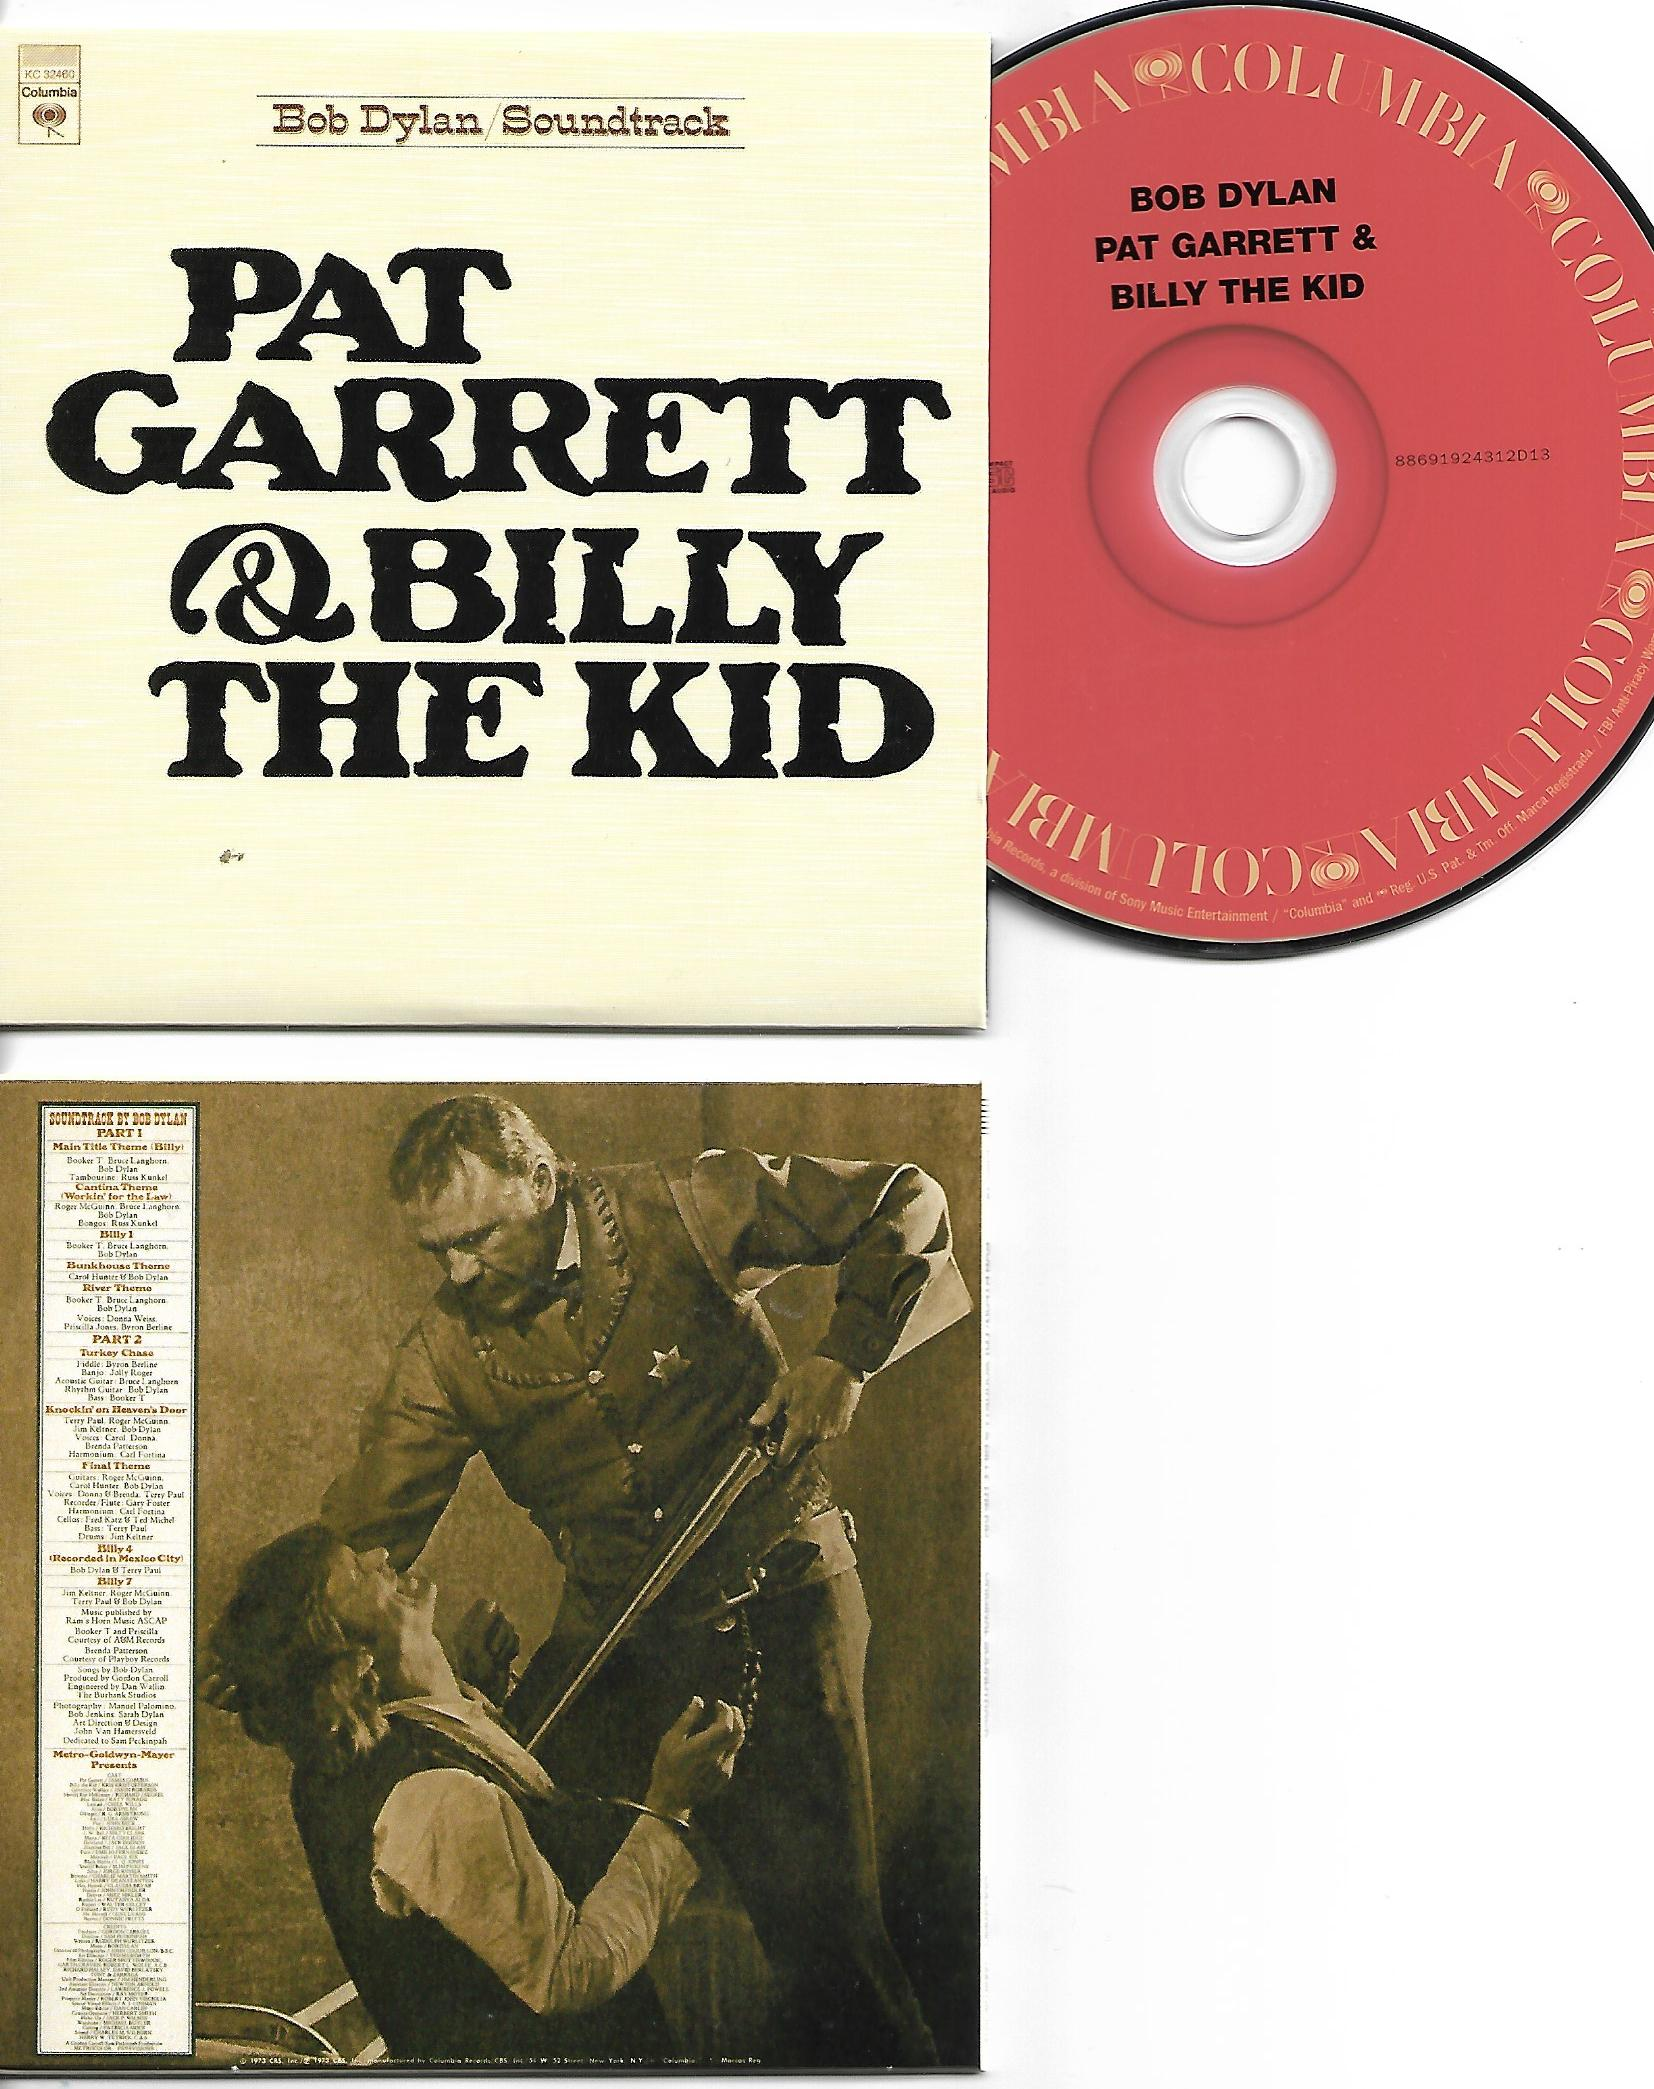 BOB DYLAN - Pat Garrett and Billy the Kid 1973 - MINI LP REPLICA CARD BOARD SLEEVE - CD